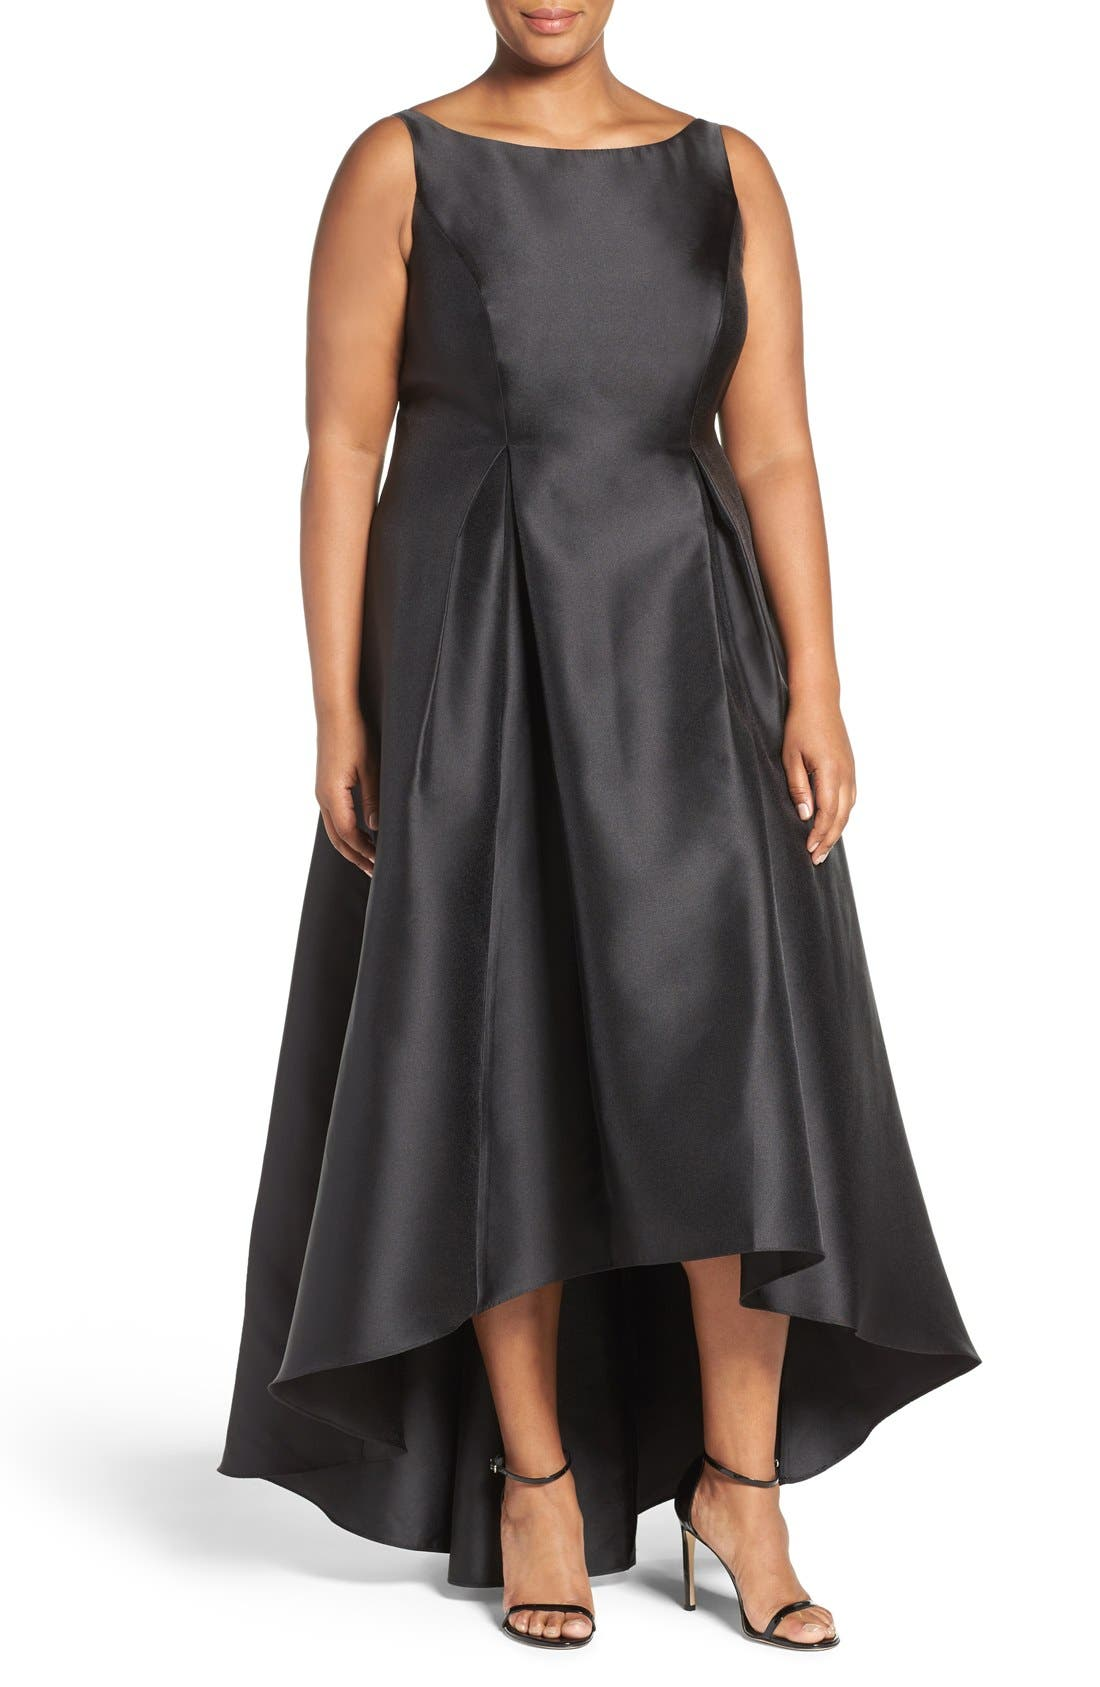 Adrianna Papell Arcadia Sleeveless High/Low Mikado Ballgown (Plus Size)